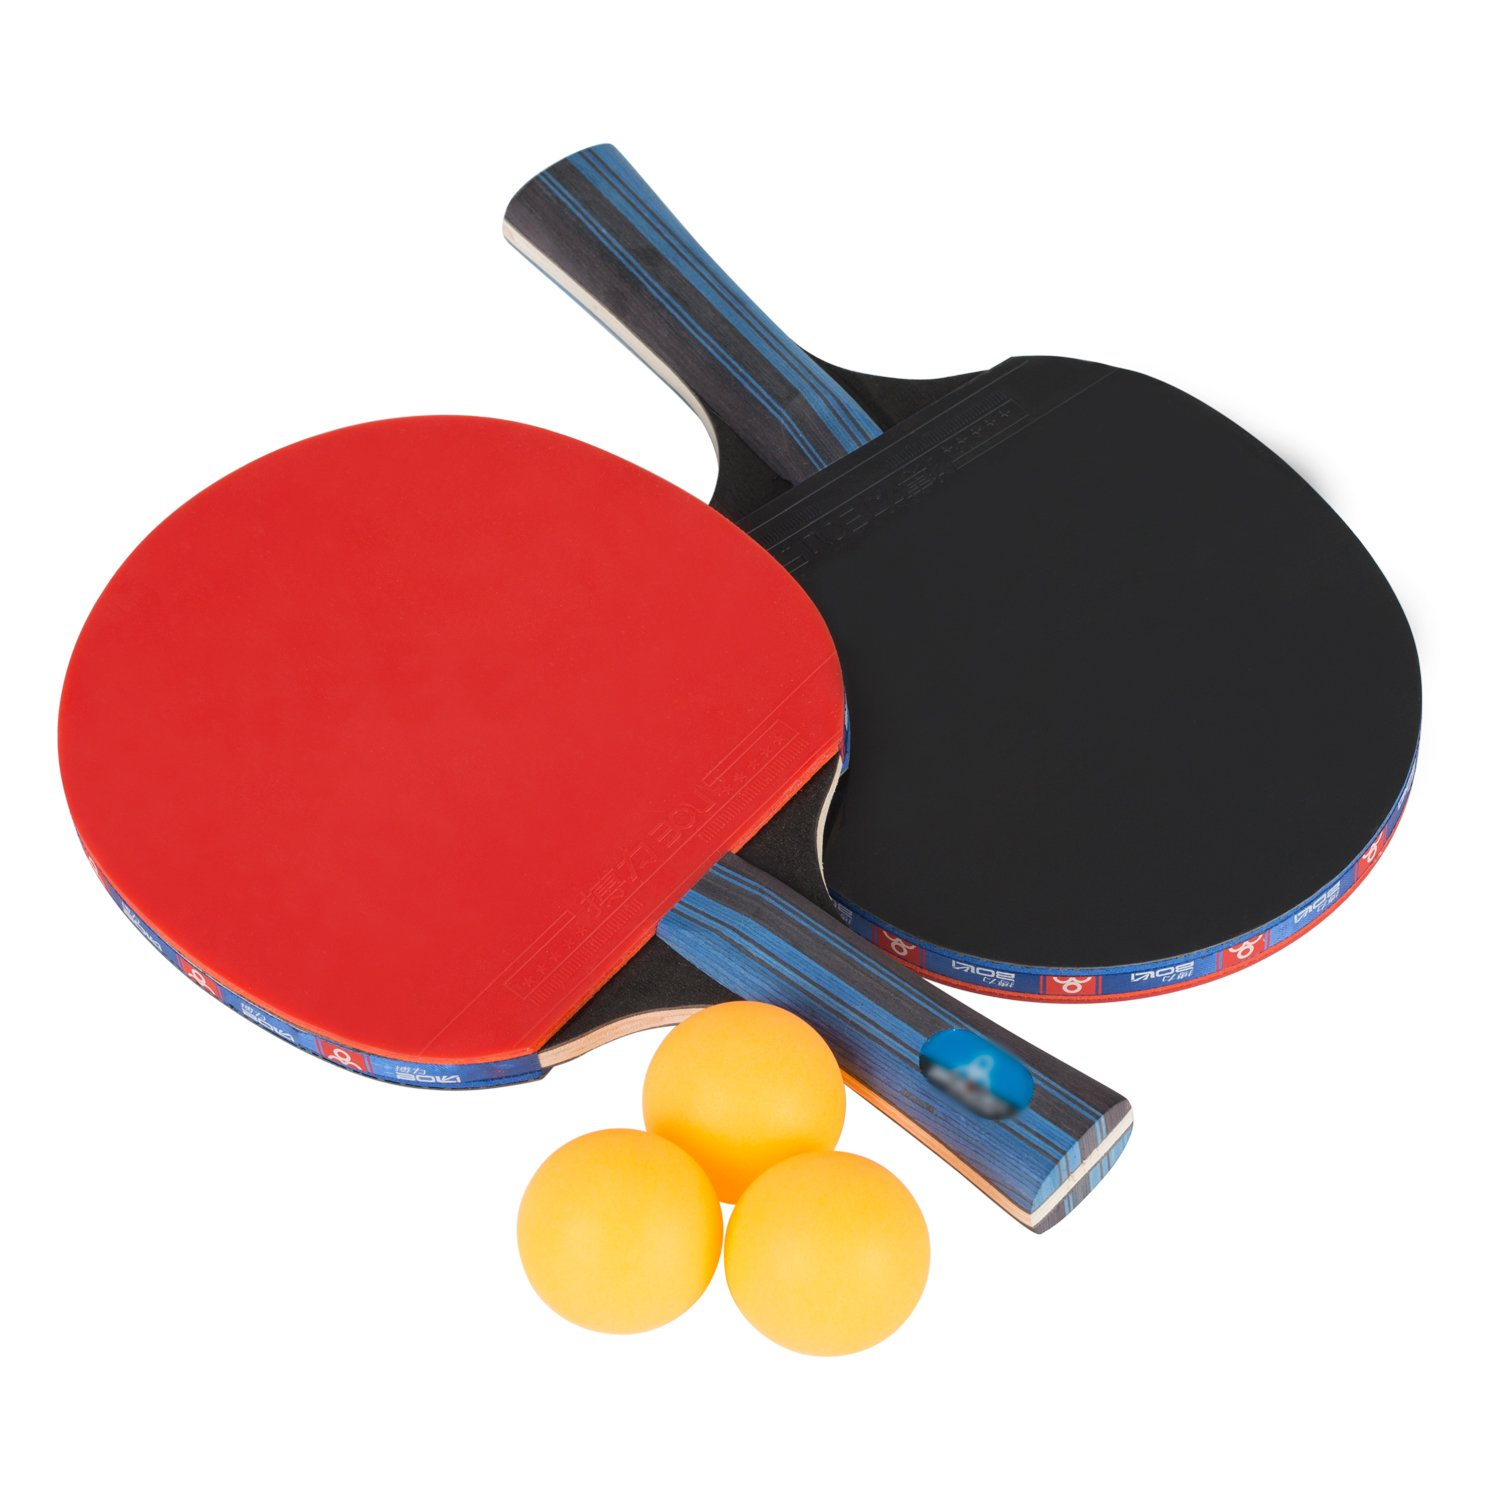 Ancees Table Tennis Set, Premium Paddles/Rackets with case and 3 Balls, PingPong Racket Ideal for Professional & Recreational Games - Soft Sponge Rubber Wood Handle Tennis Bat 5 Ply (2 Bats)